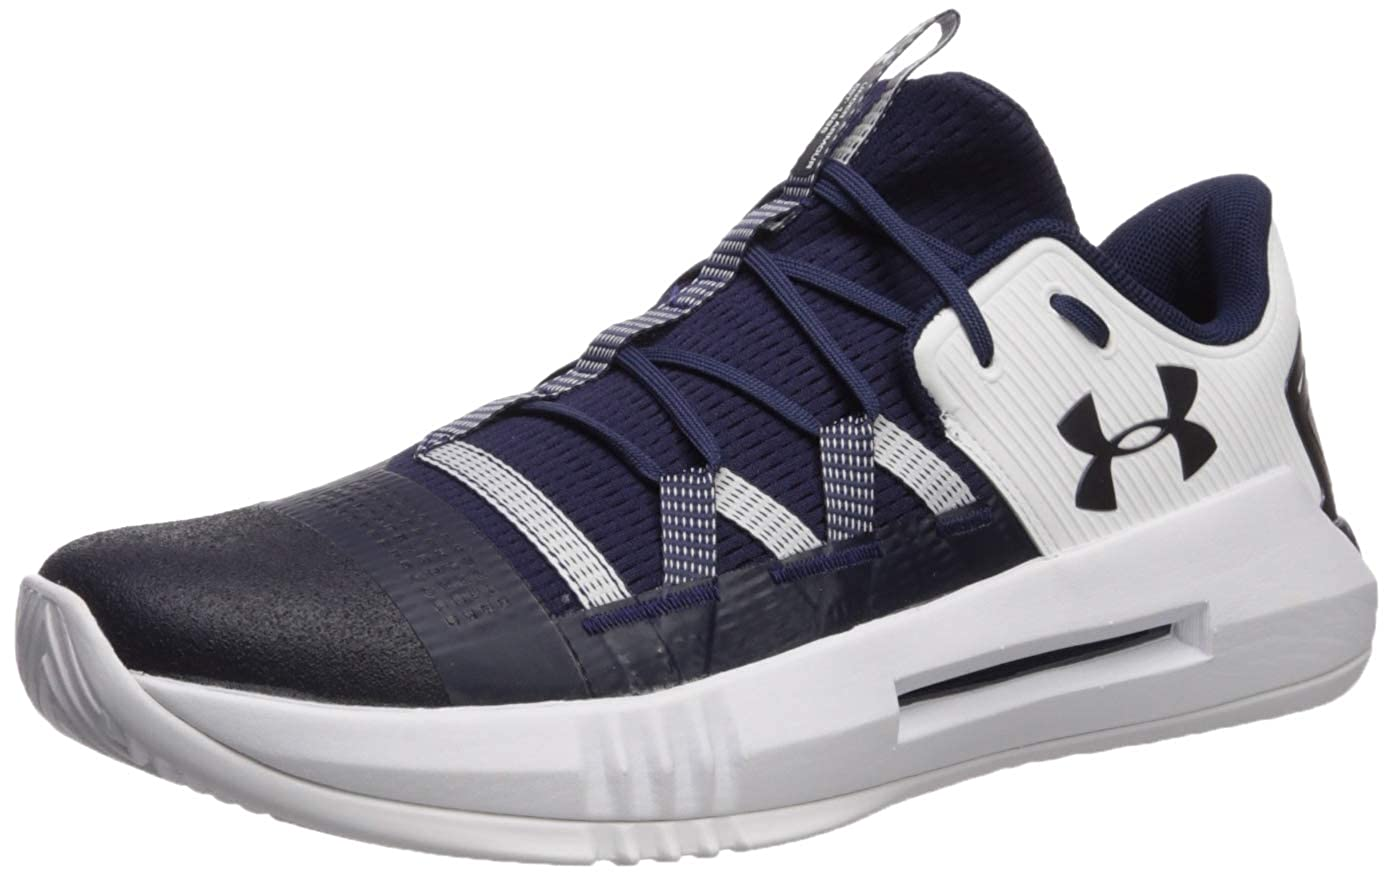 Under Armour Women's UA Block City 2.0 Volleyball Shoe, Midnight Navy (400)/白い, 9 M US